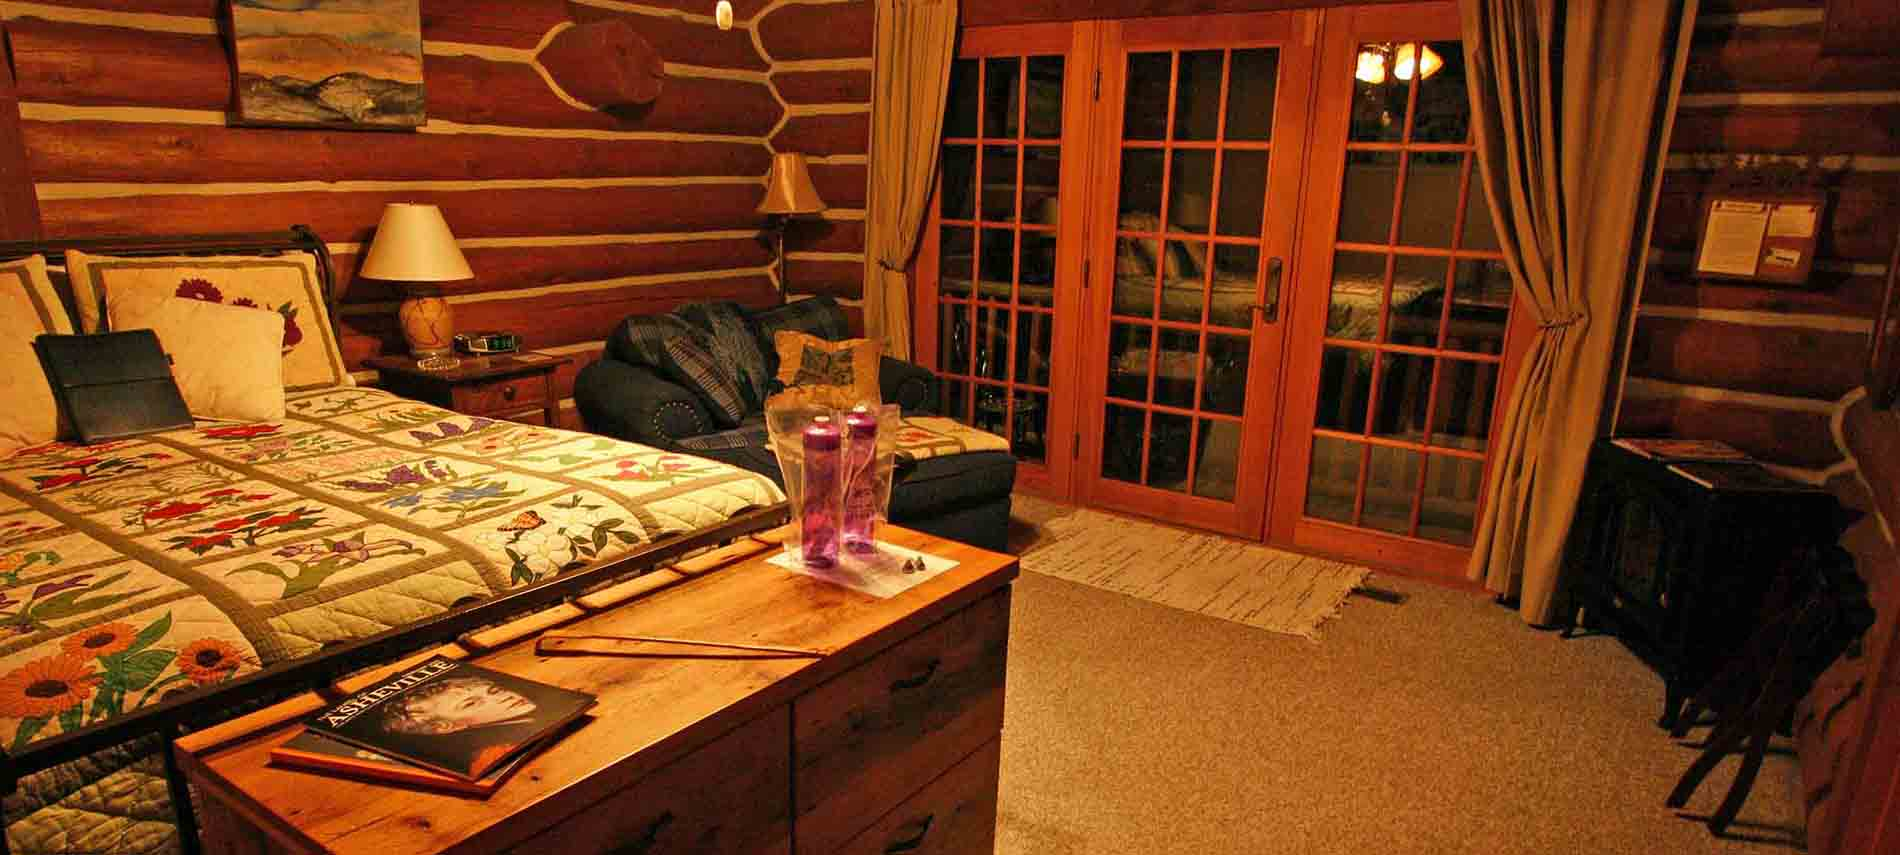 Second floor rustic room with queen bed, fireplace, and french door leading onto a balcony with seating for two.